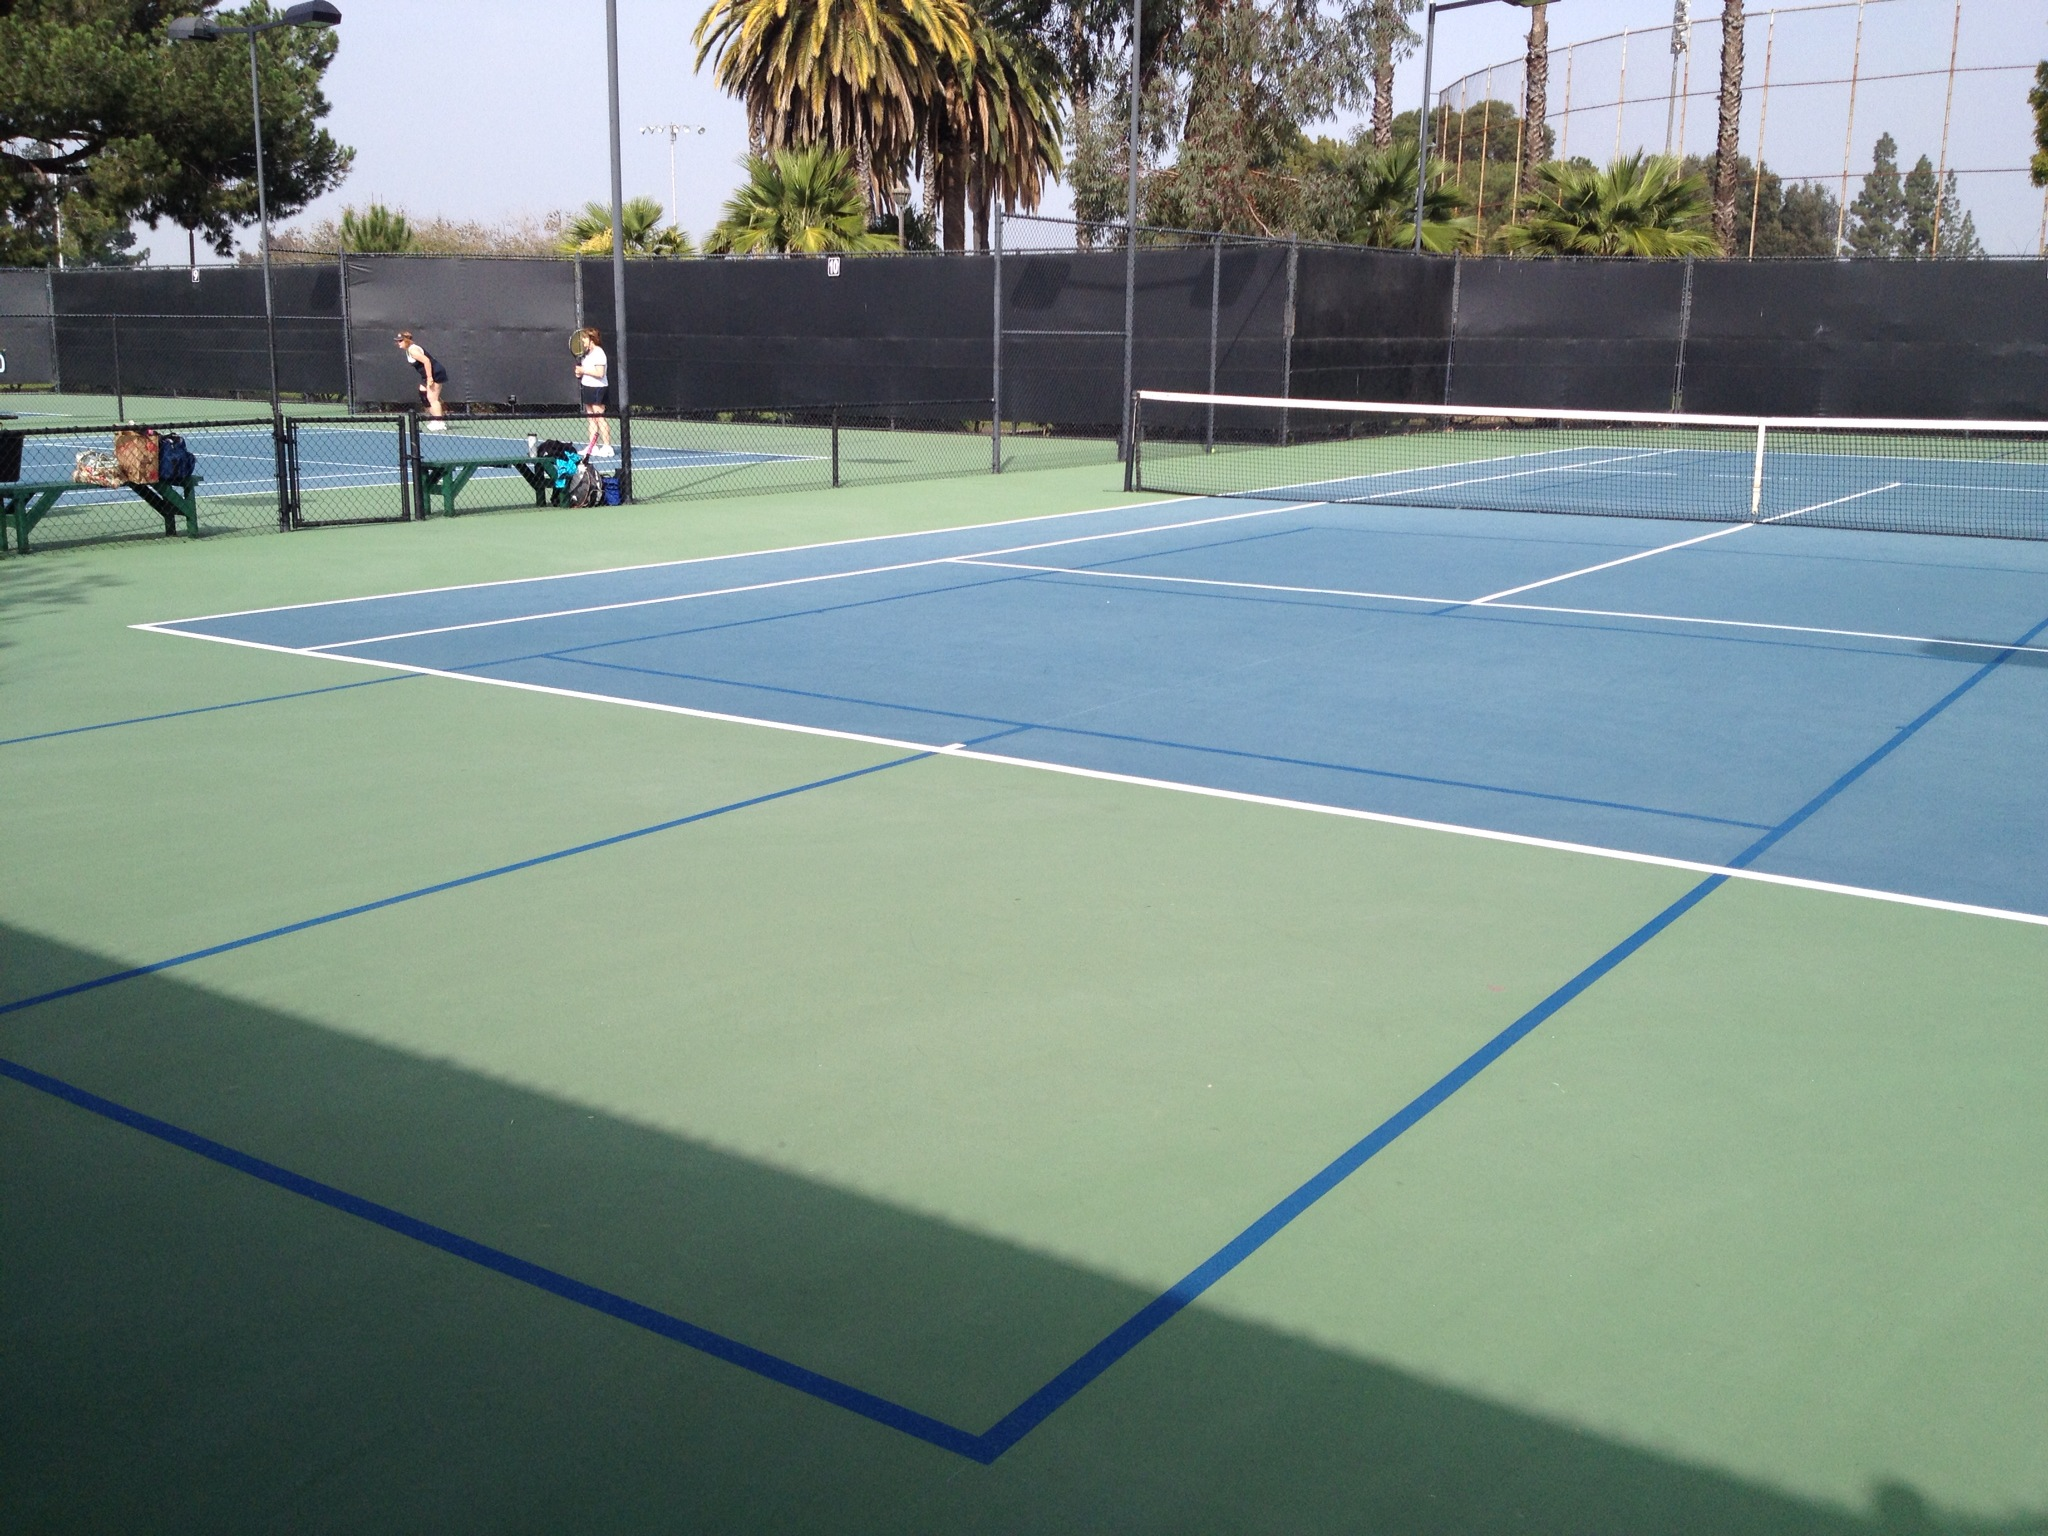 Blended Lines For Pickleball